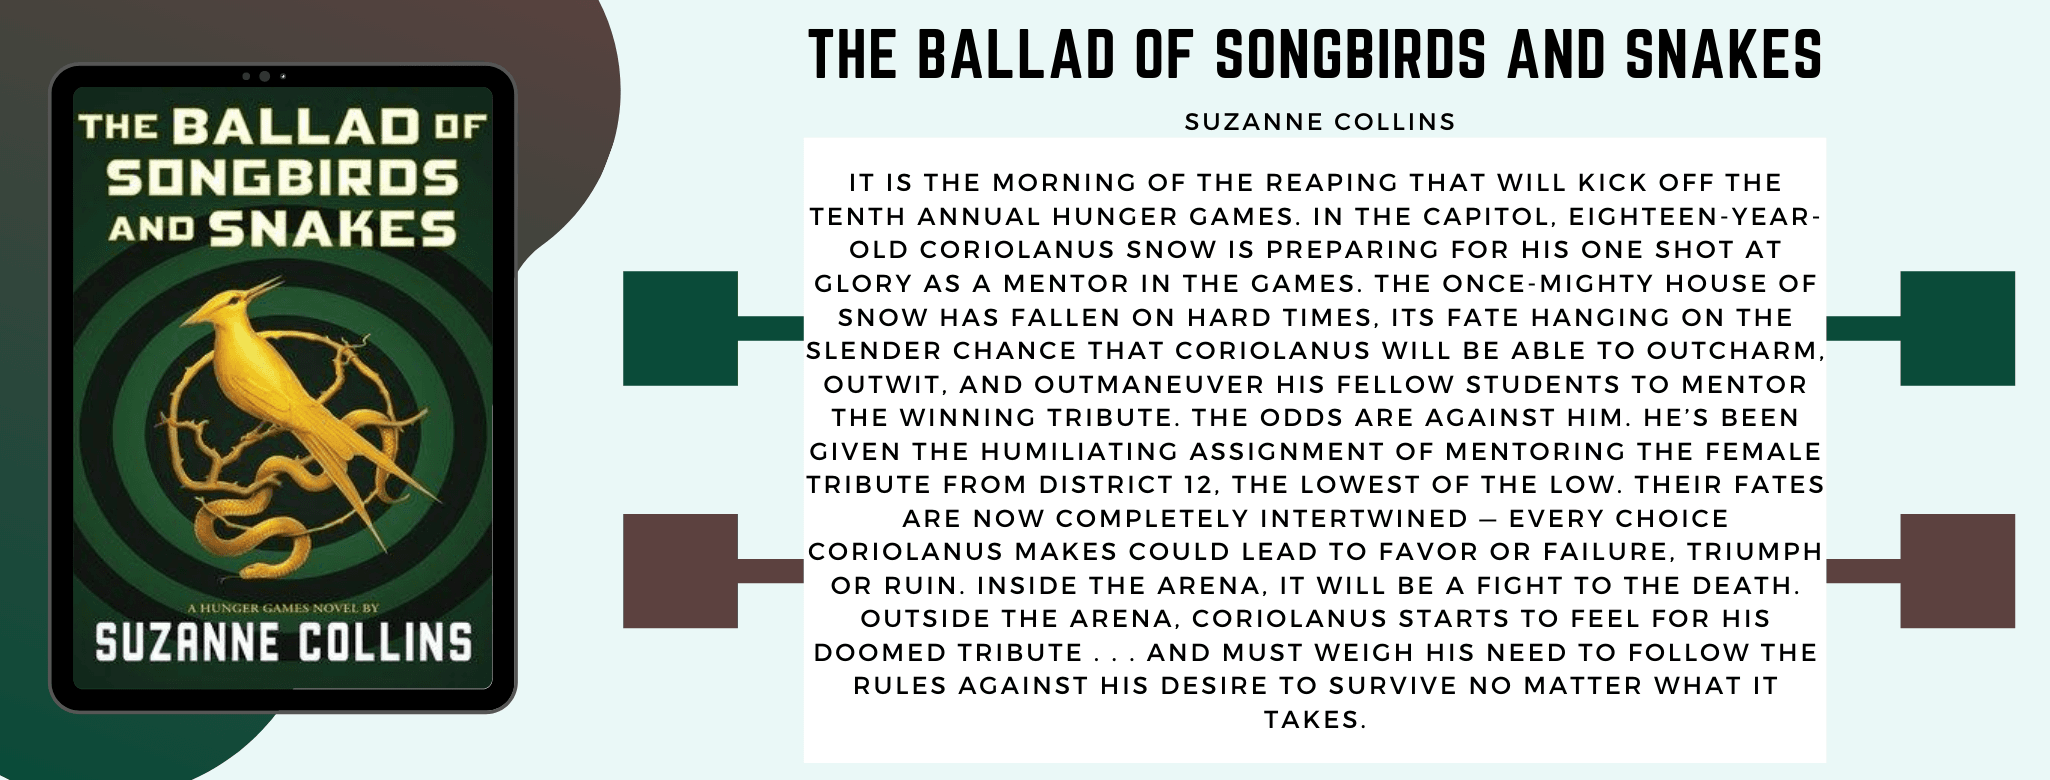 The Ballad of Songbirds and Snakes (1)